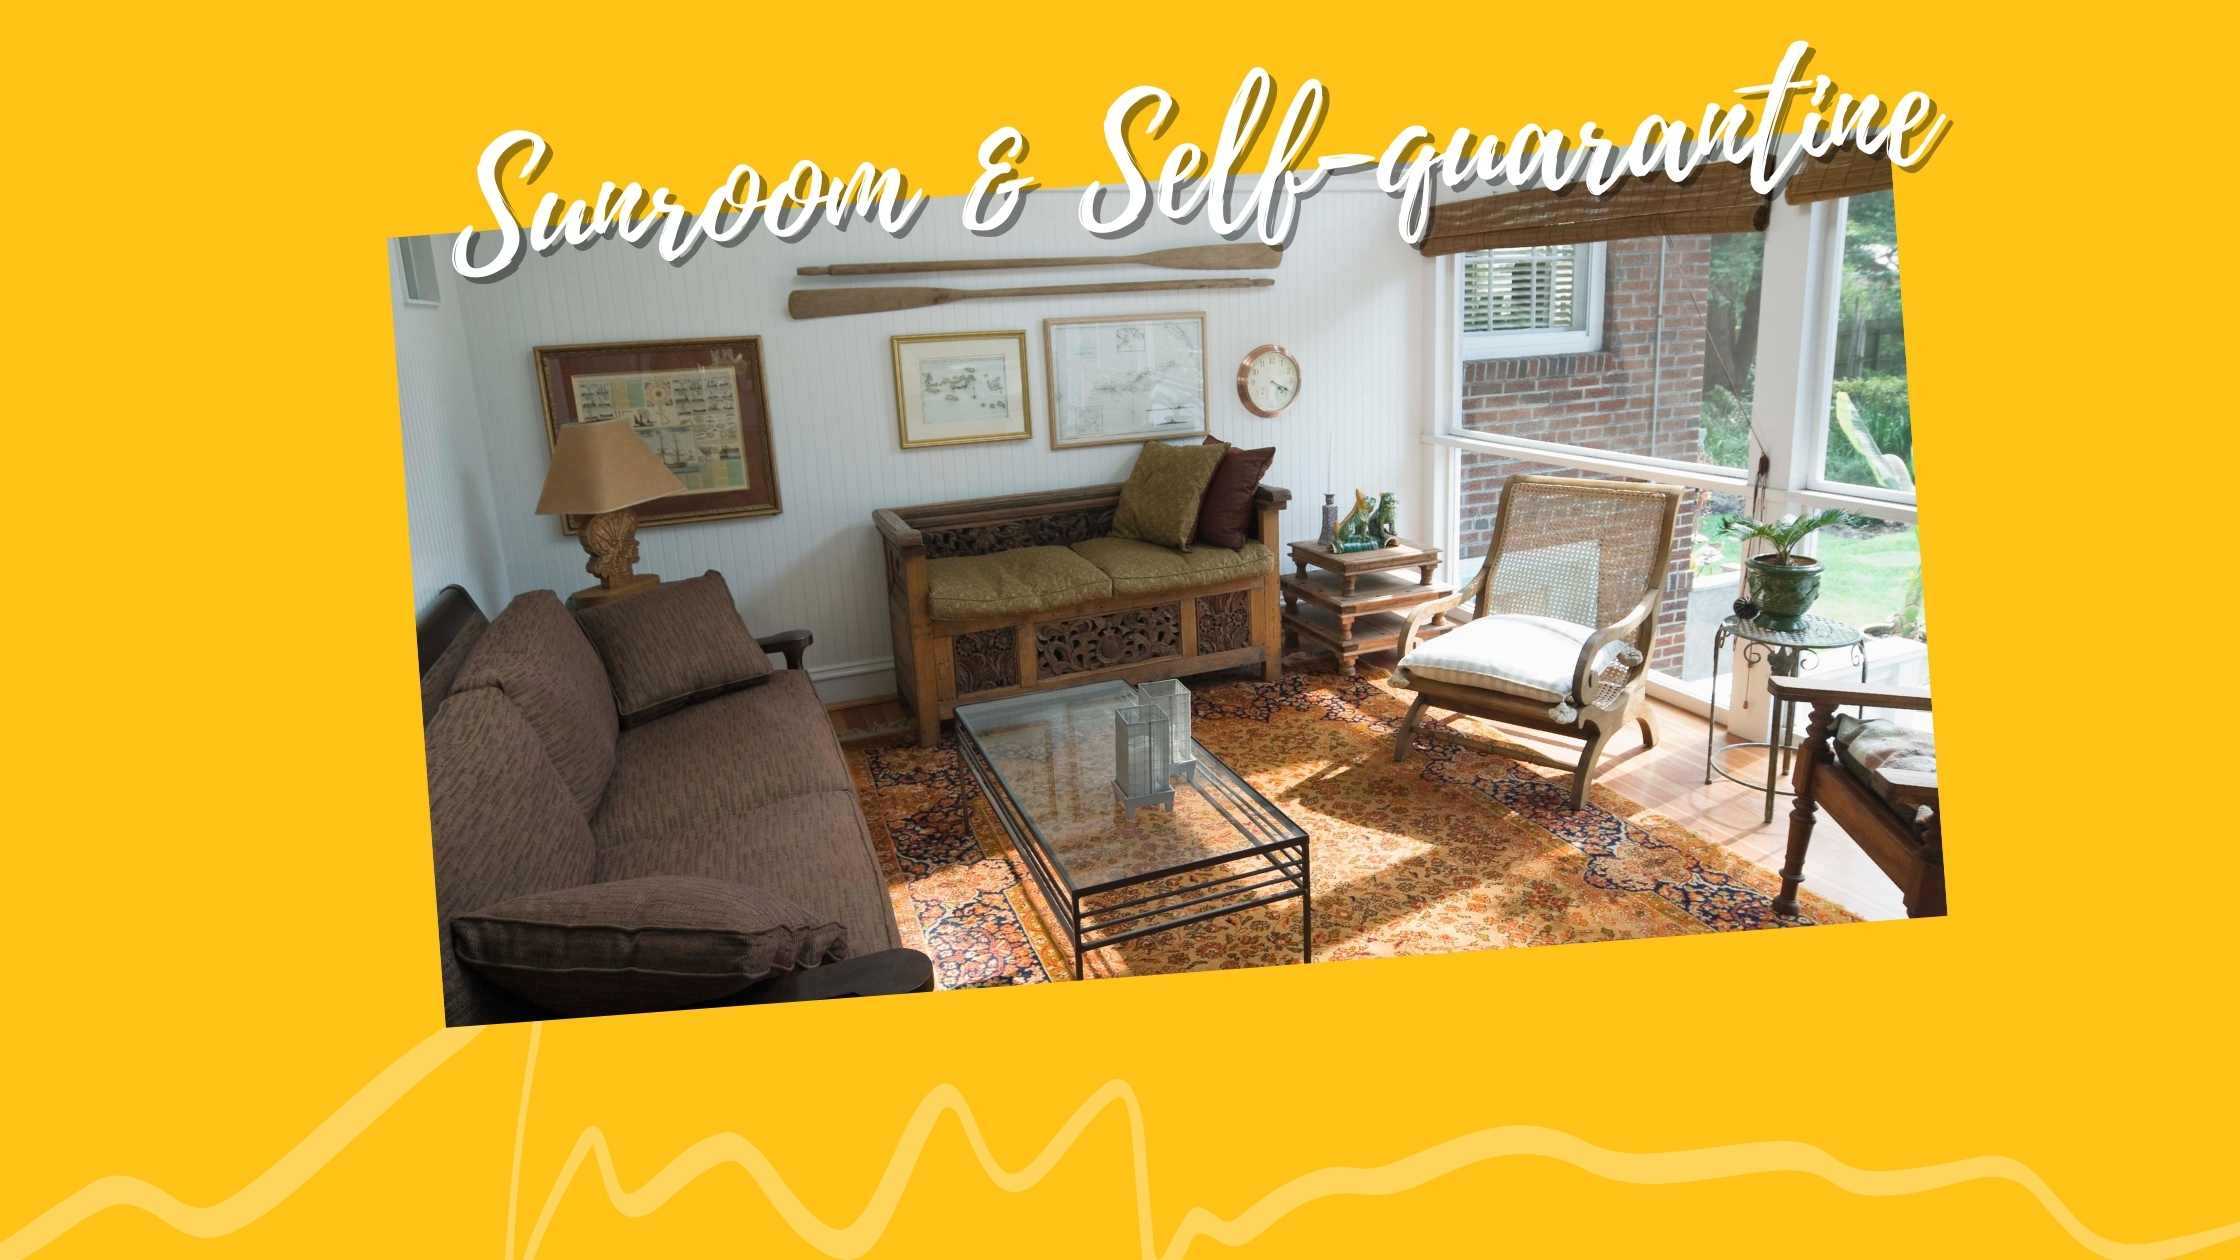 How a sunroom can benefit your home while self quarantine